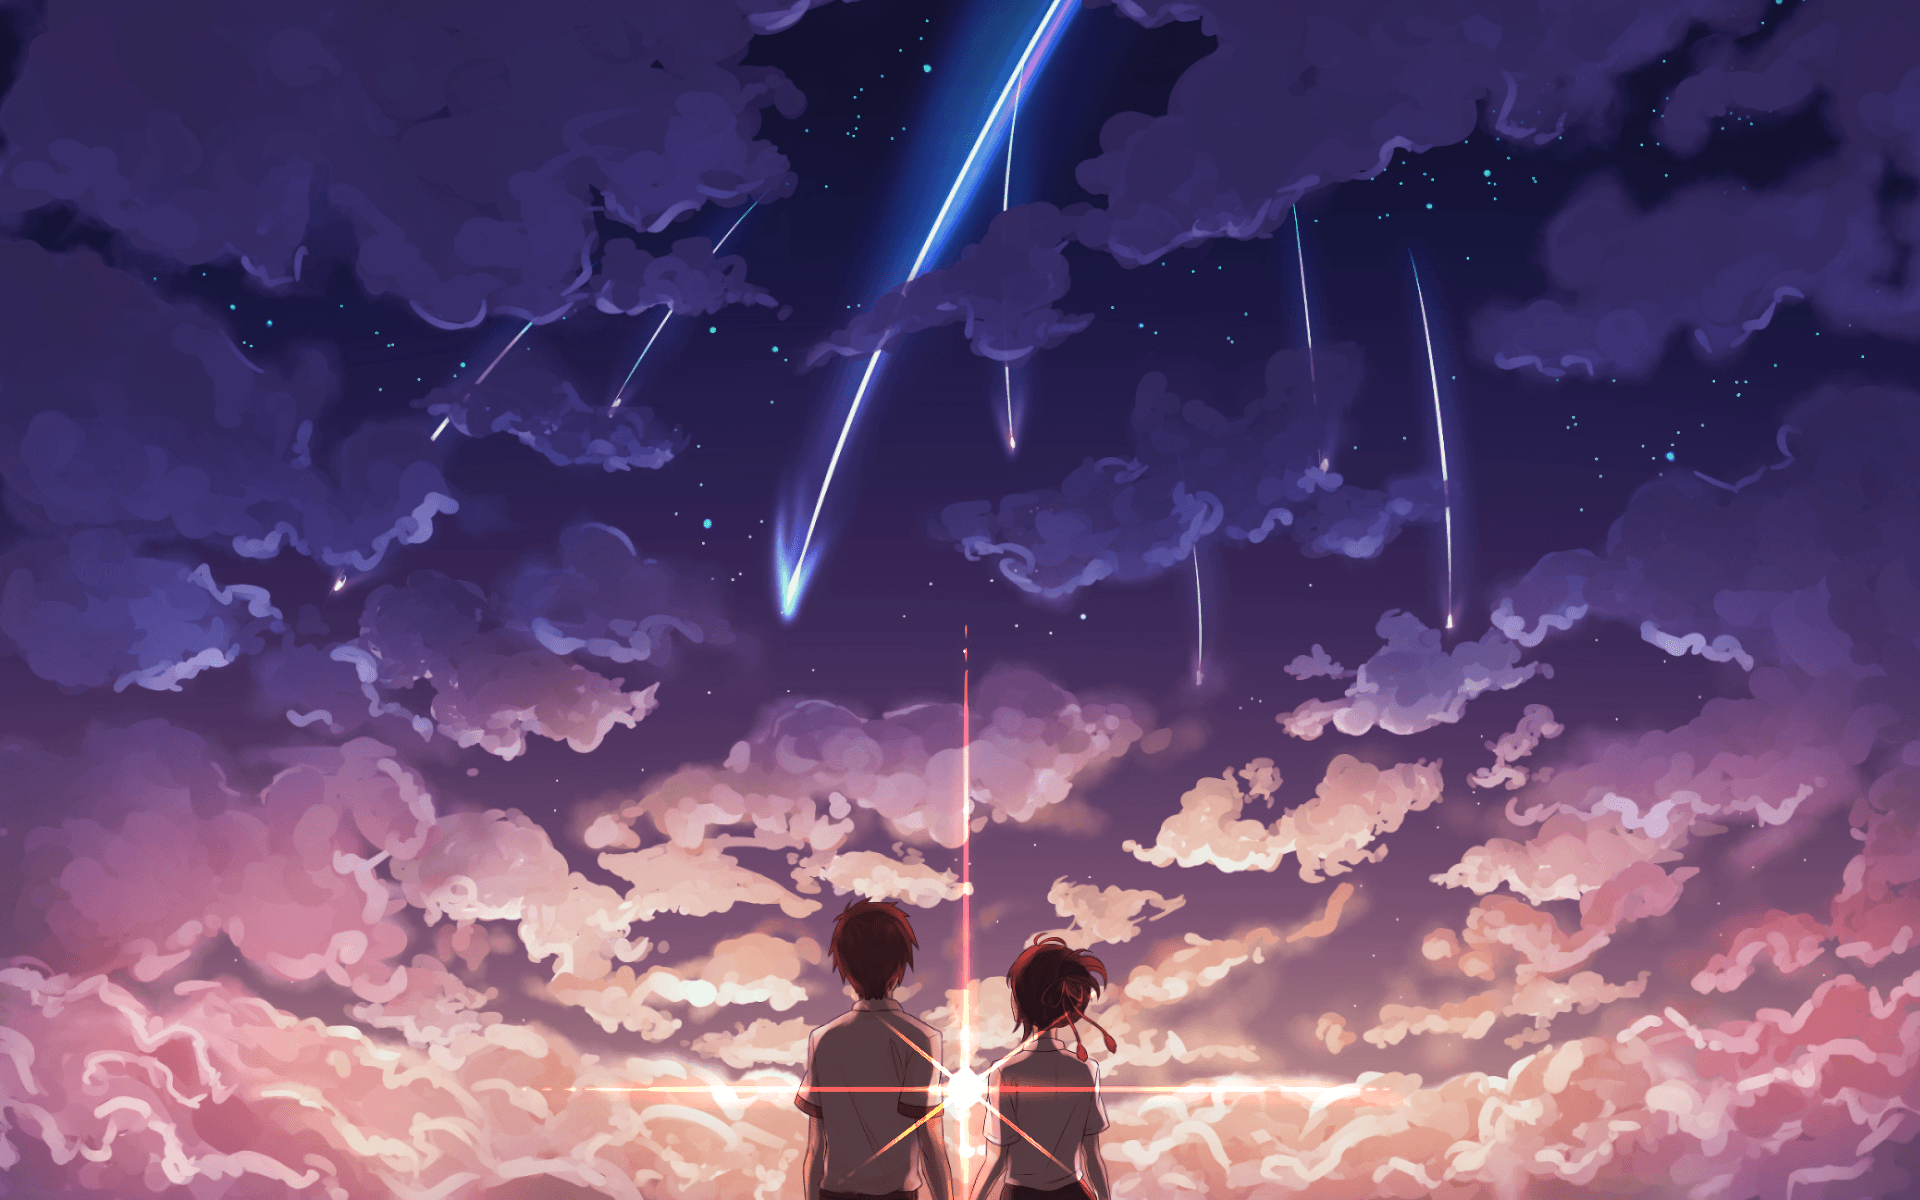 Your Name Anime Wallpapers   Top Your Name Anime Backgrounds 1920x1200